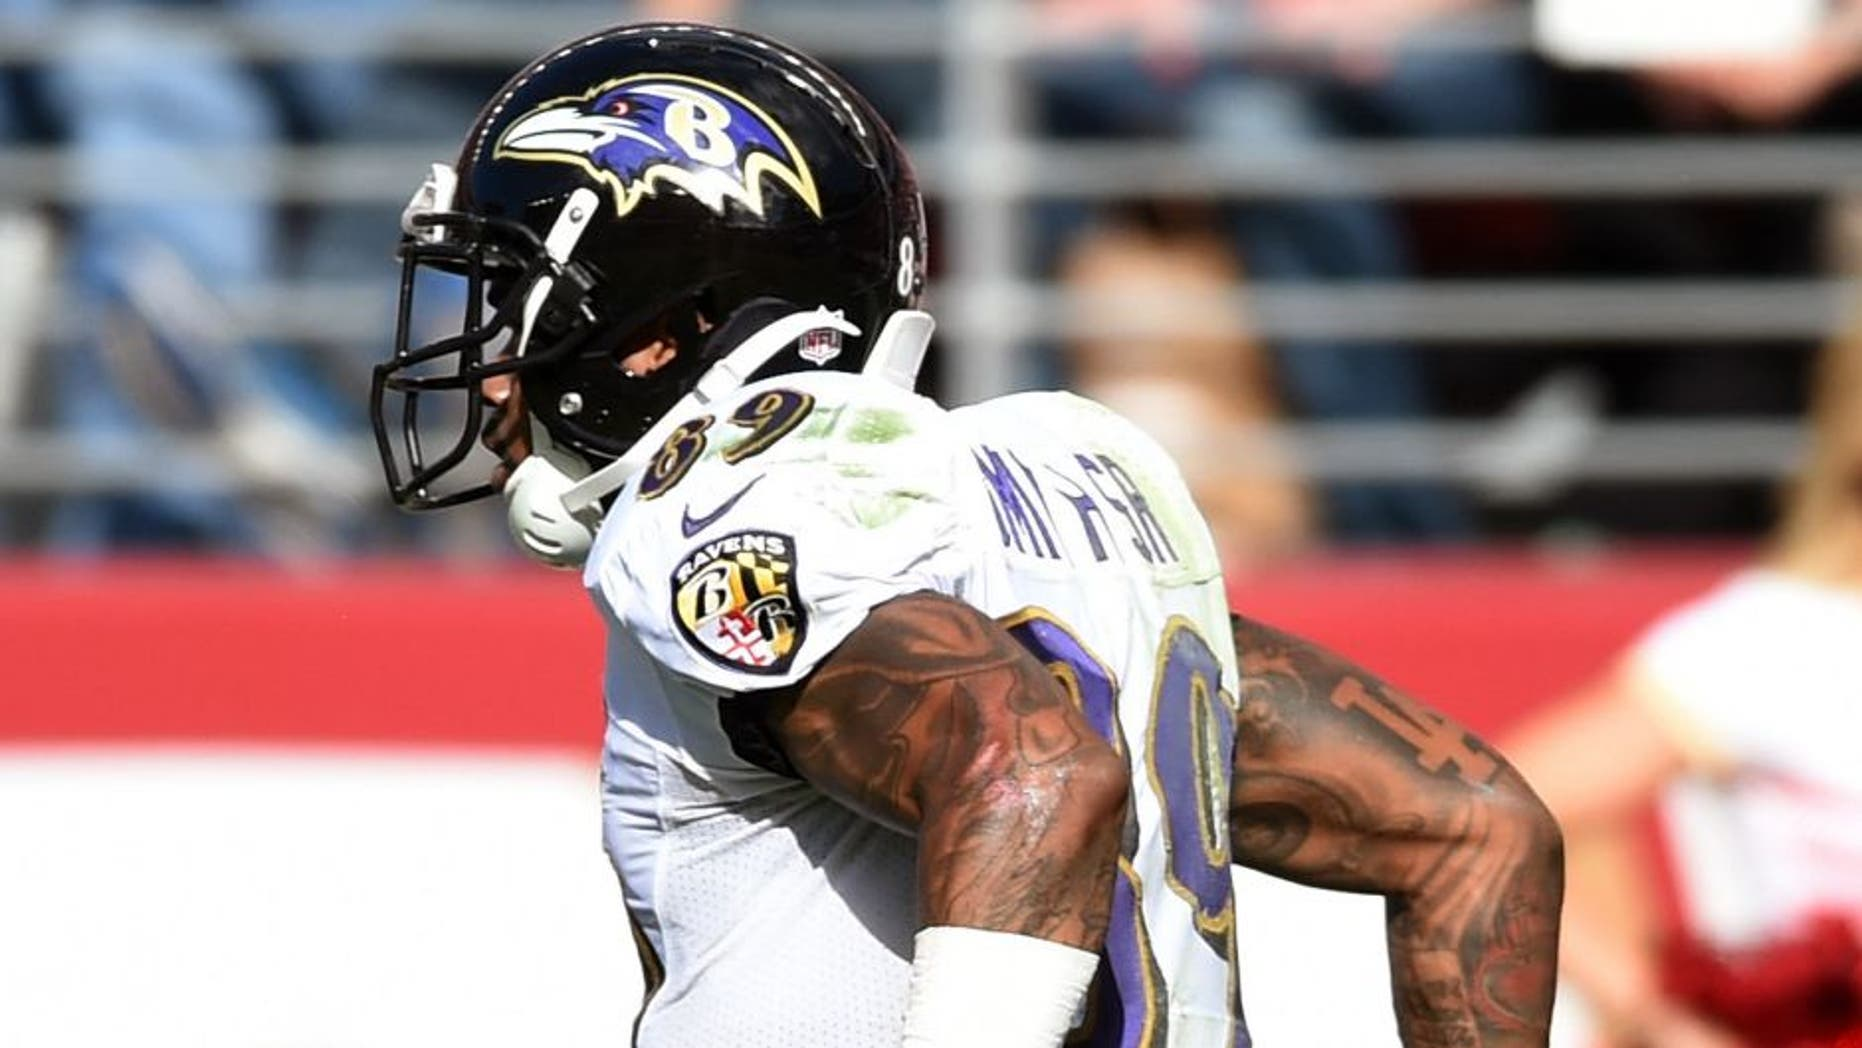 SANTA CLARA, CA - OCTOBER 18: wide receiver Steve Smith #89 of the Baltimore Ravens celebrates after a touchdown against the San Francisco 49ers during their NFL game at Levi's Stadium on October 18, 2015 in Santa Clara, California. (Photo by Thearon W. Henderson/Getty Images)